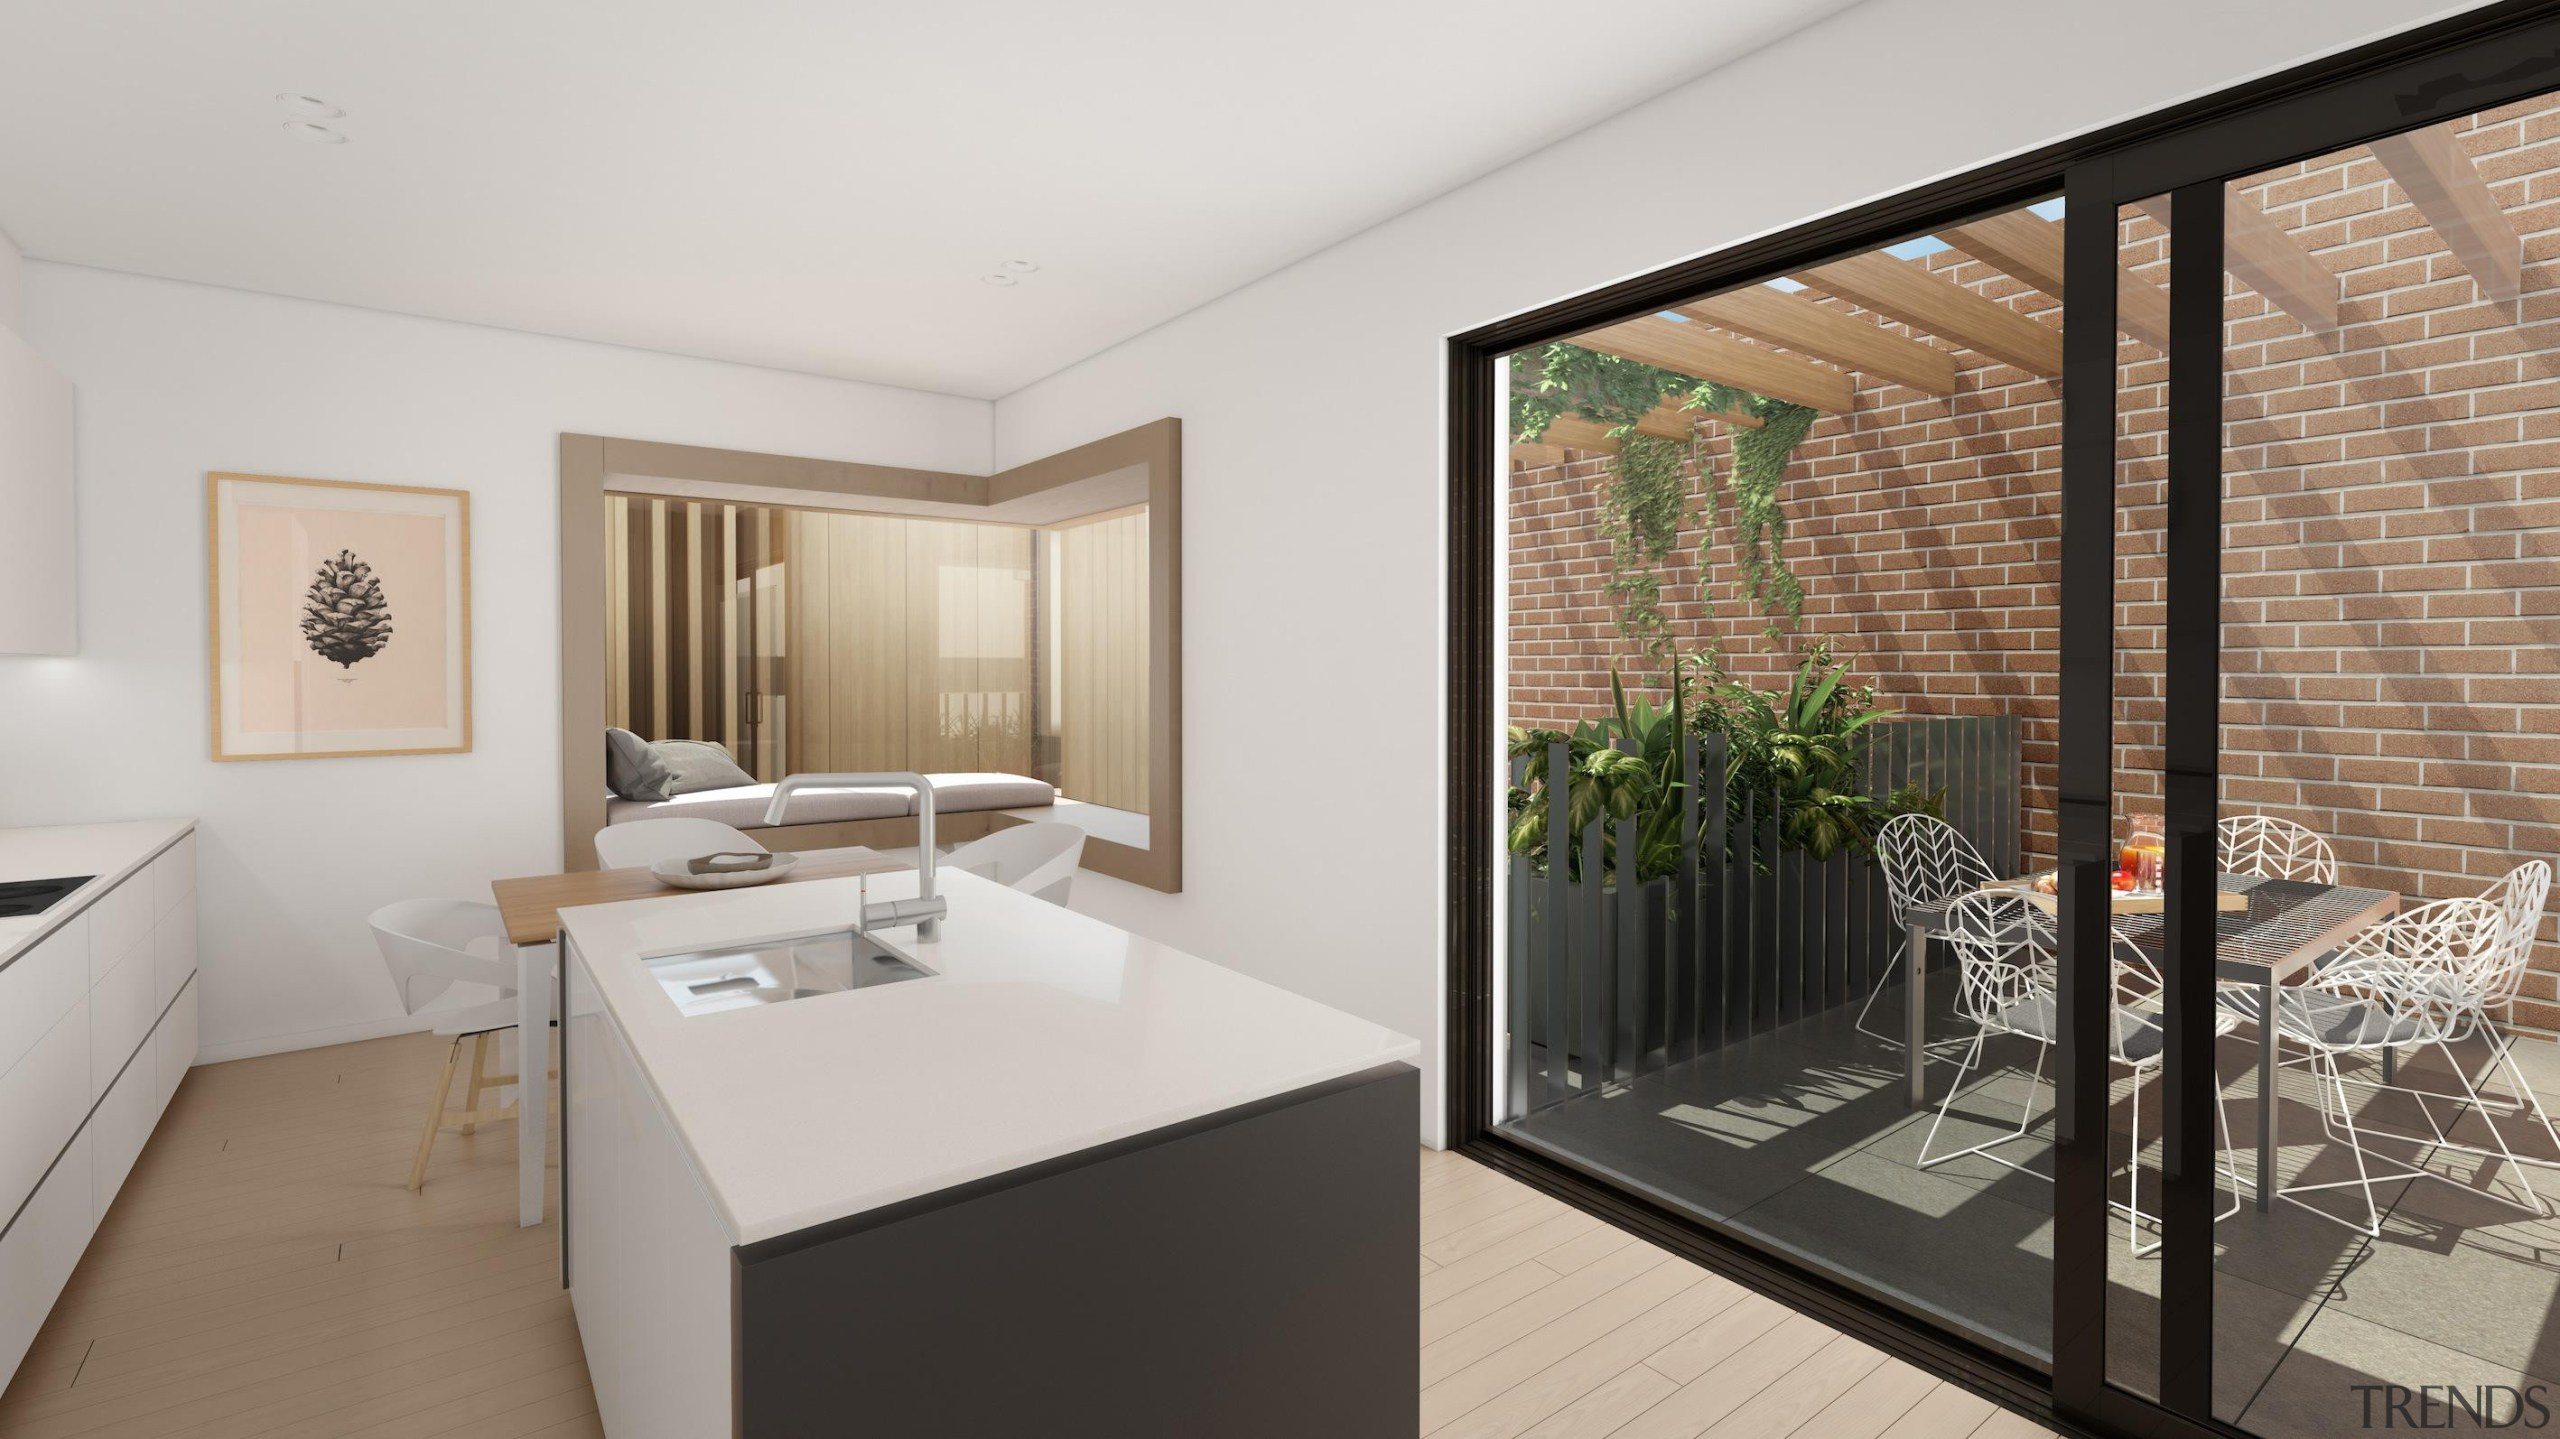 The first stage of Wynyard Central is an architecture, interior design, real estate, window, gray